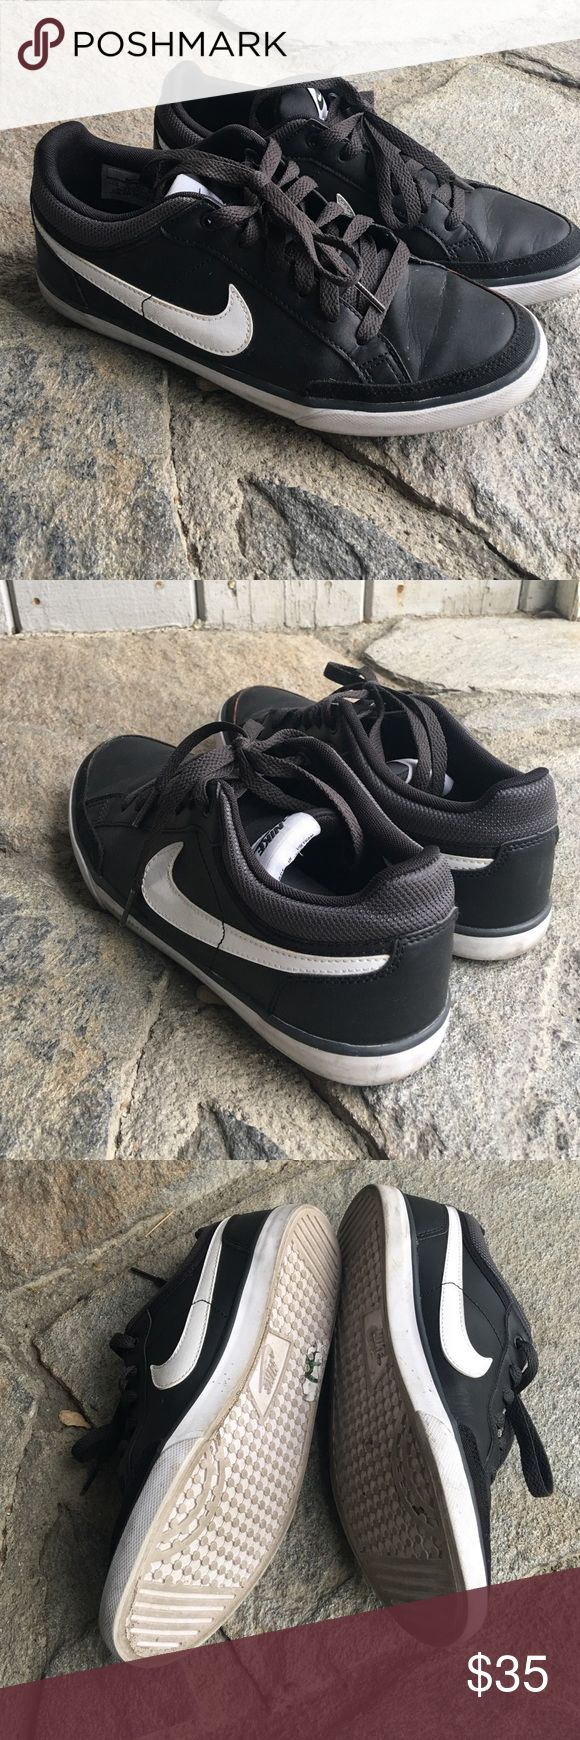 Nike black leather sneakers Black leather sneaker with white sole, lots of life left! Used the wrong shoe cleaner and accidentally bleached the front toe... price reflects condition. Might be fixed with dye? Nike Shoes Sneakers